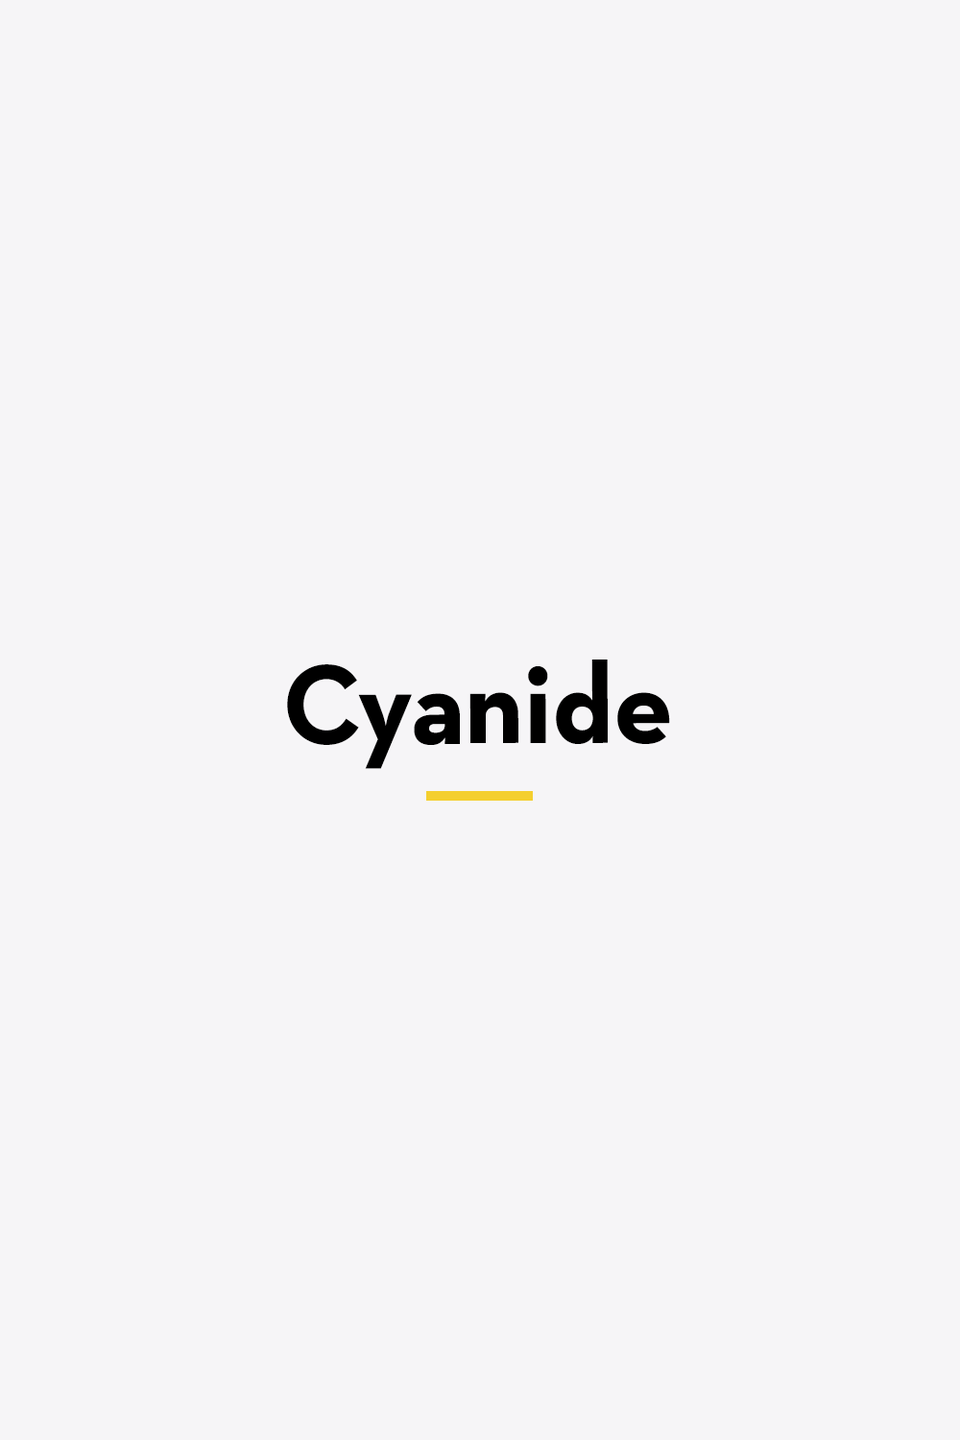 """<p>A mother in Wales thought Cyanide would be a good choice for a name because it had a positive aura around it, since Cyanide was the poison that killed Hitler. The courts disagreed. In a very unusual ruling, the judge decided that the baby girl — <em>and</em> her twin brother, who was given the less-poisonous name Preacher — would get to <a href=""""https://www.bbc.com/news/uk-wales-mid-wales-36045987"""" rel=""""nofollow noopener"""" target=""""_blank"""" data-ylk=""""slk:be re-named by the twins' older half-siblings"""" class=""""link rapid-noclick-resp"""">be re-named by the twins' older half-siblings</a>.</p>"""